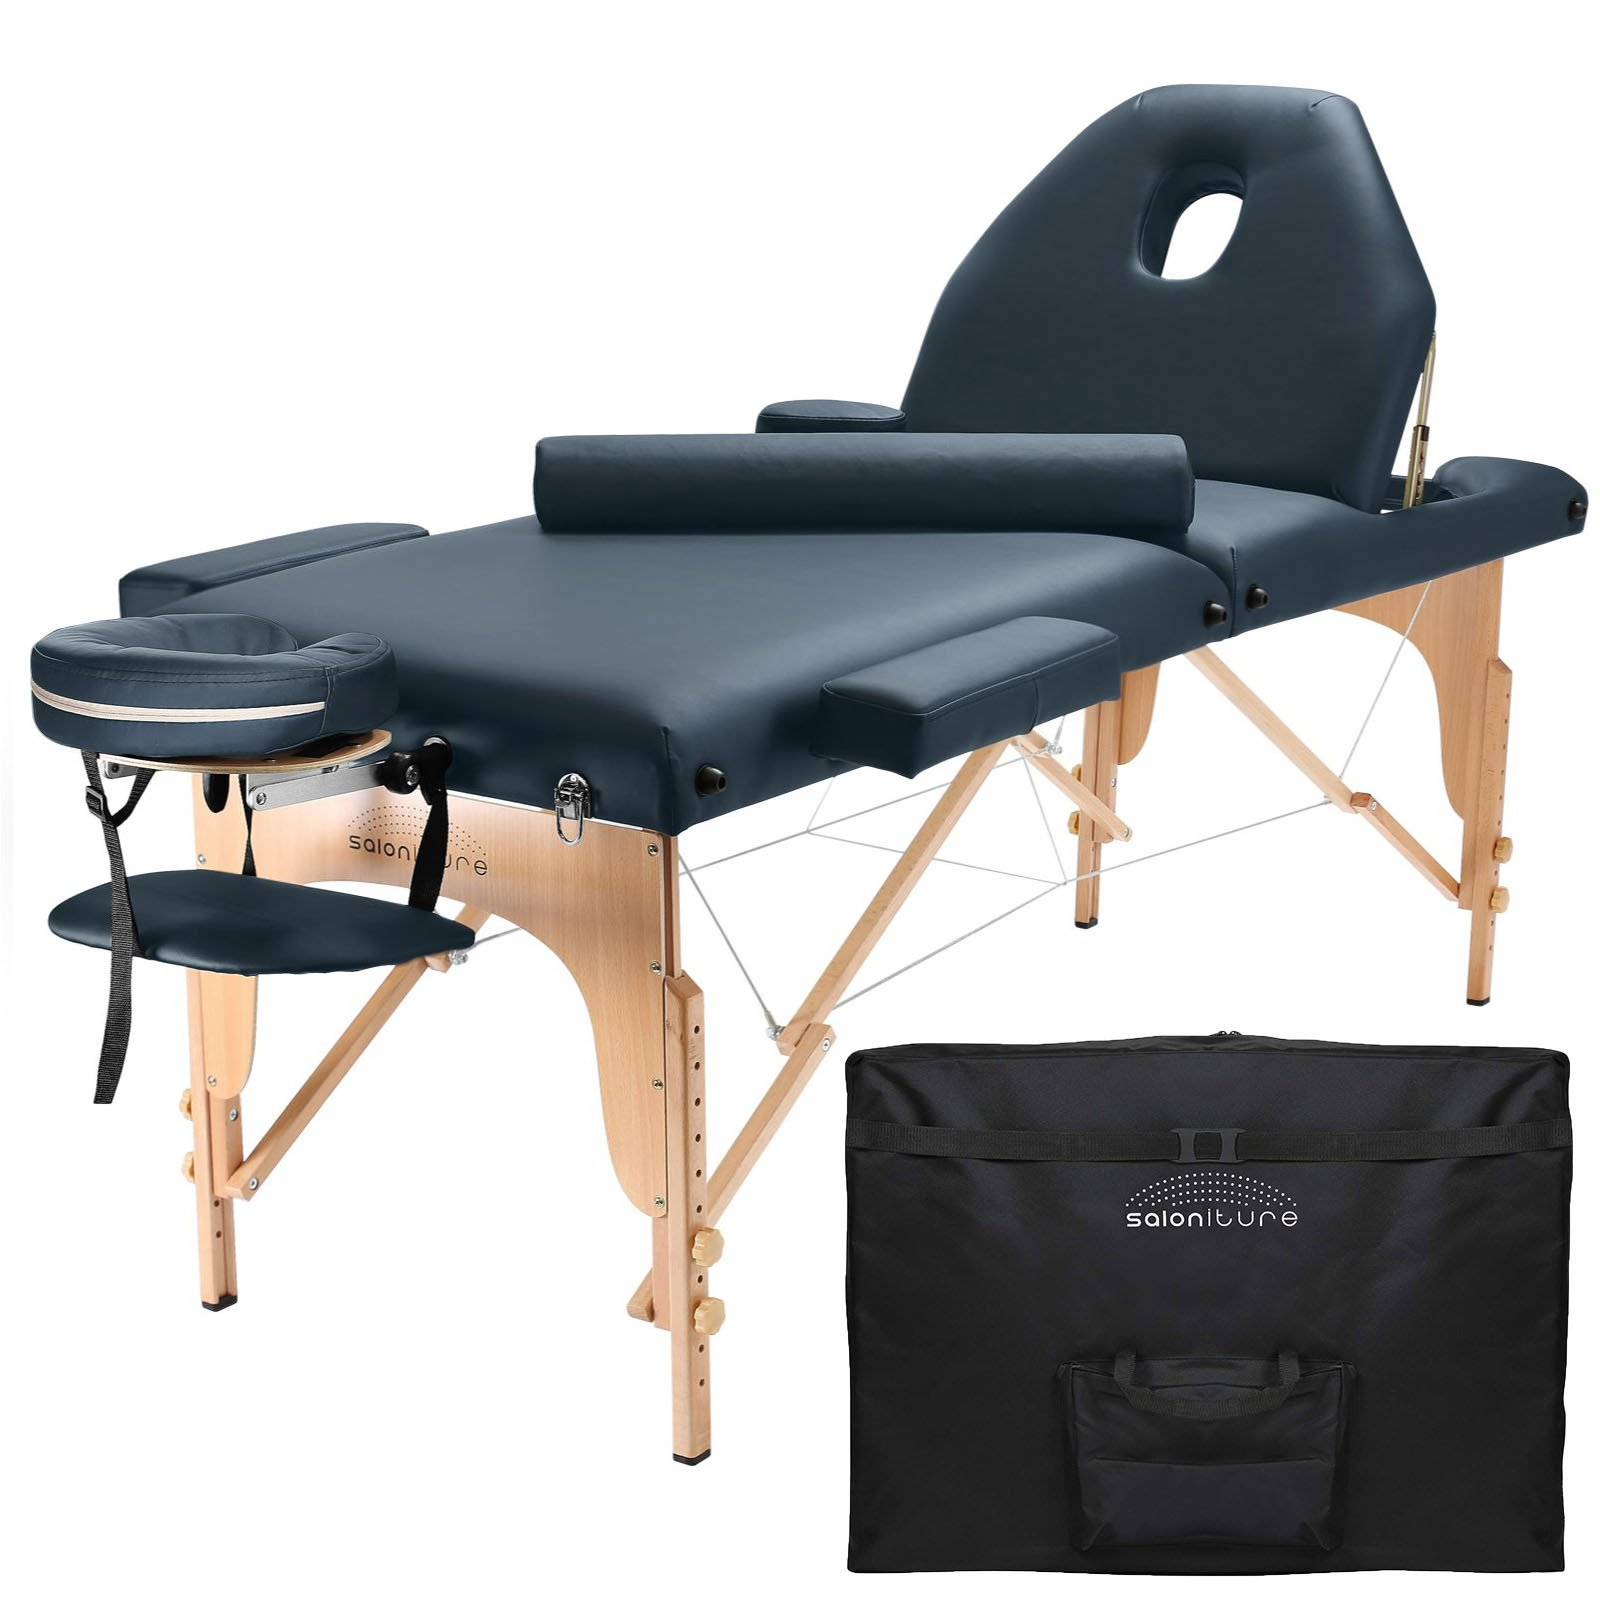 Saloniture Professional Portable Massage Table with Backrest - Blue by Saloniture (Image #1)